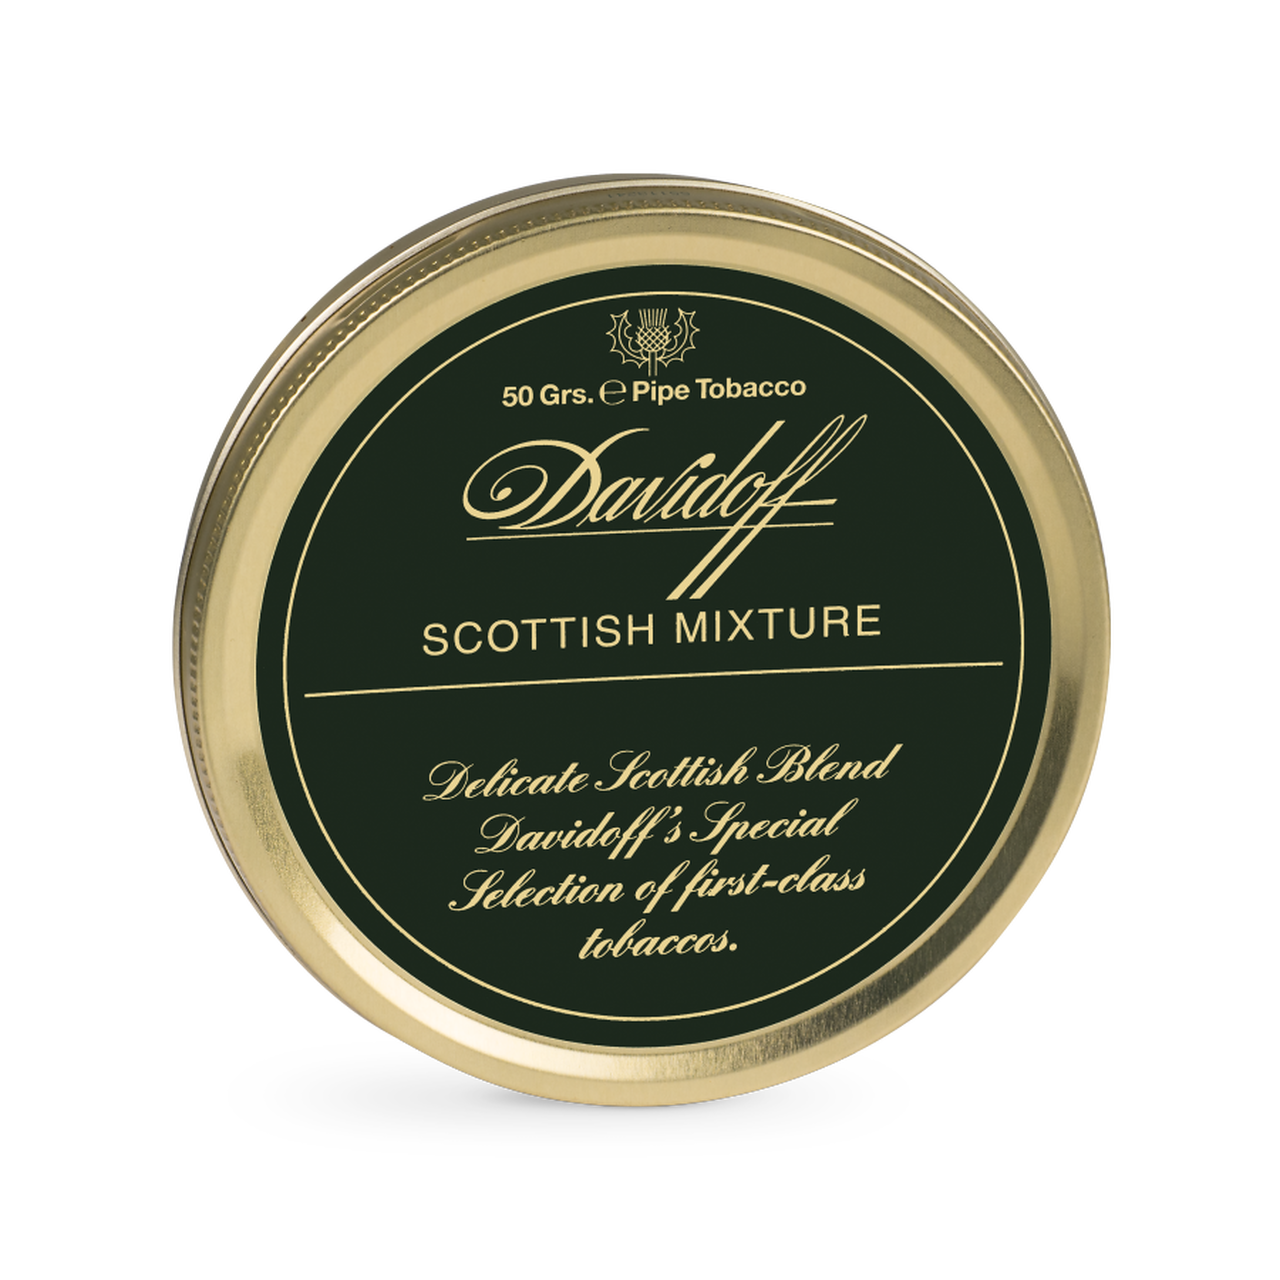 DAVIDOFF ROYALTY DANISH SCOTTISH ENGLISH PIPE